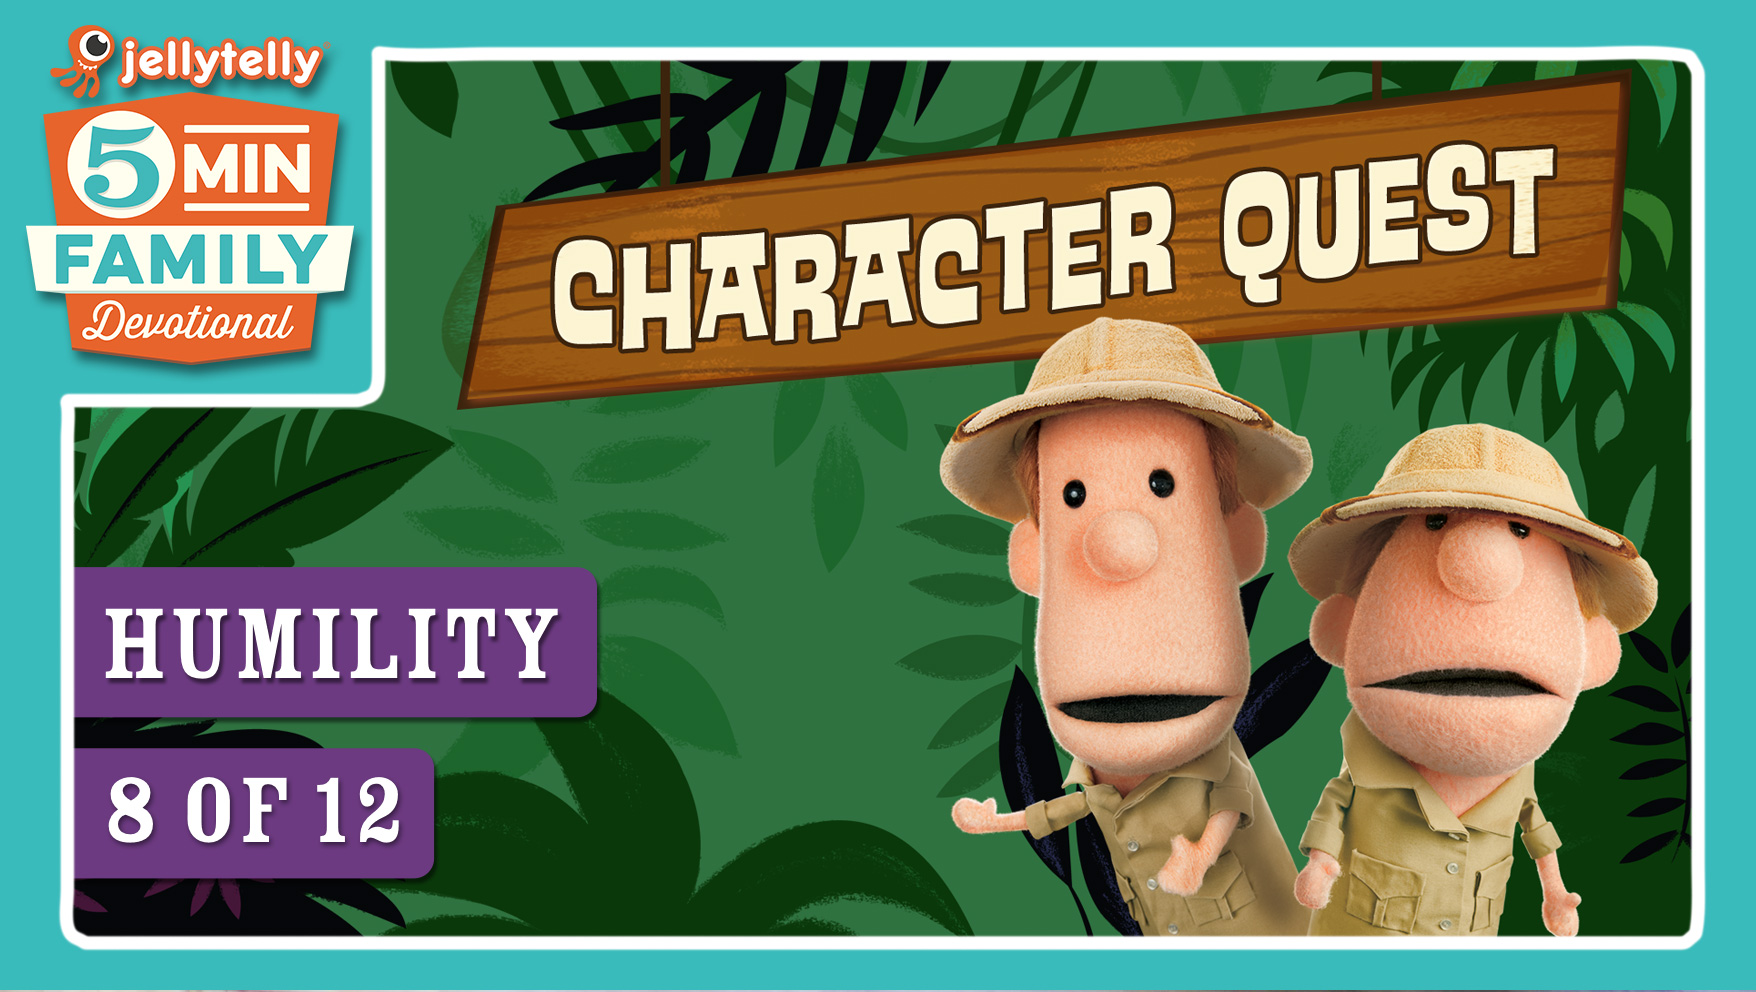 Humility - Character Quest 5 Minute Family Devotional